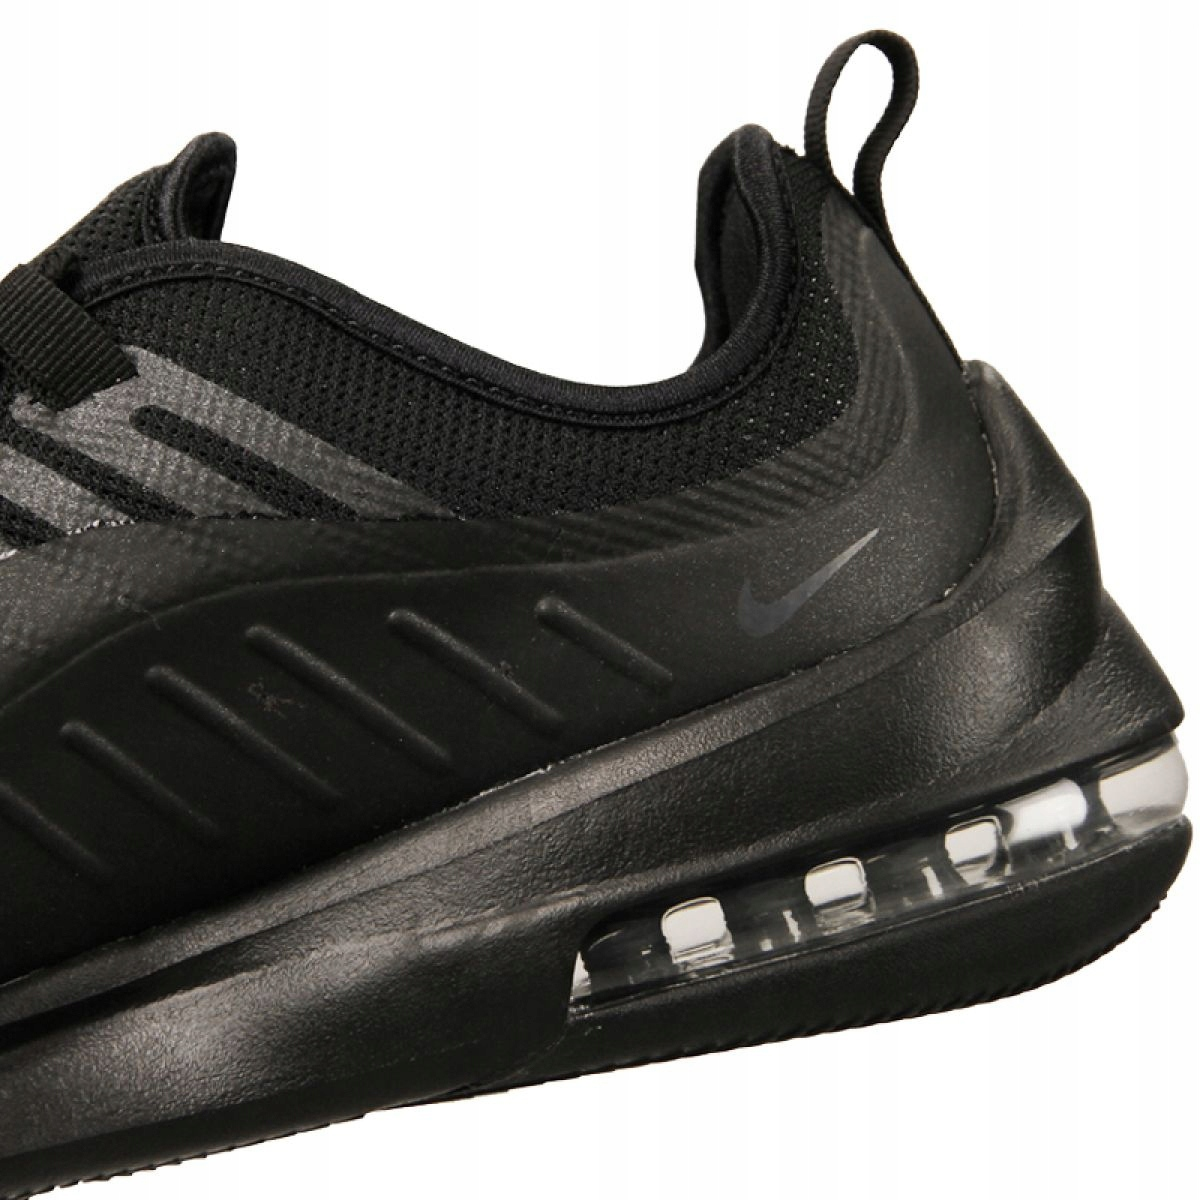 Details about Nike Air Max Axis M AA2146 006 shoes black